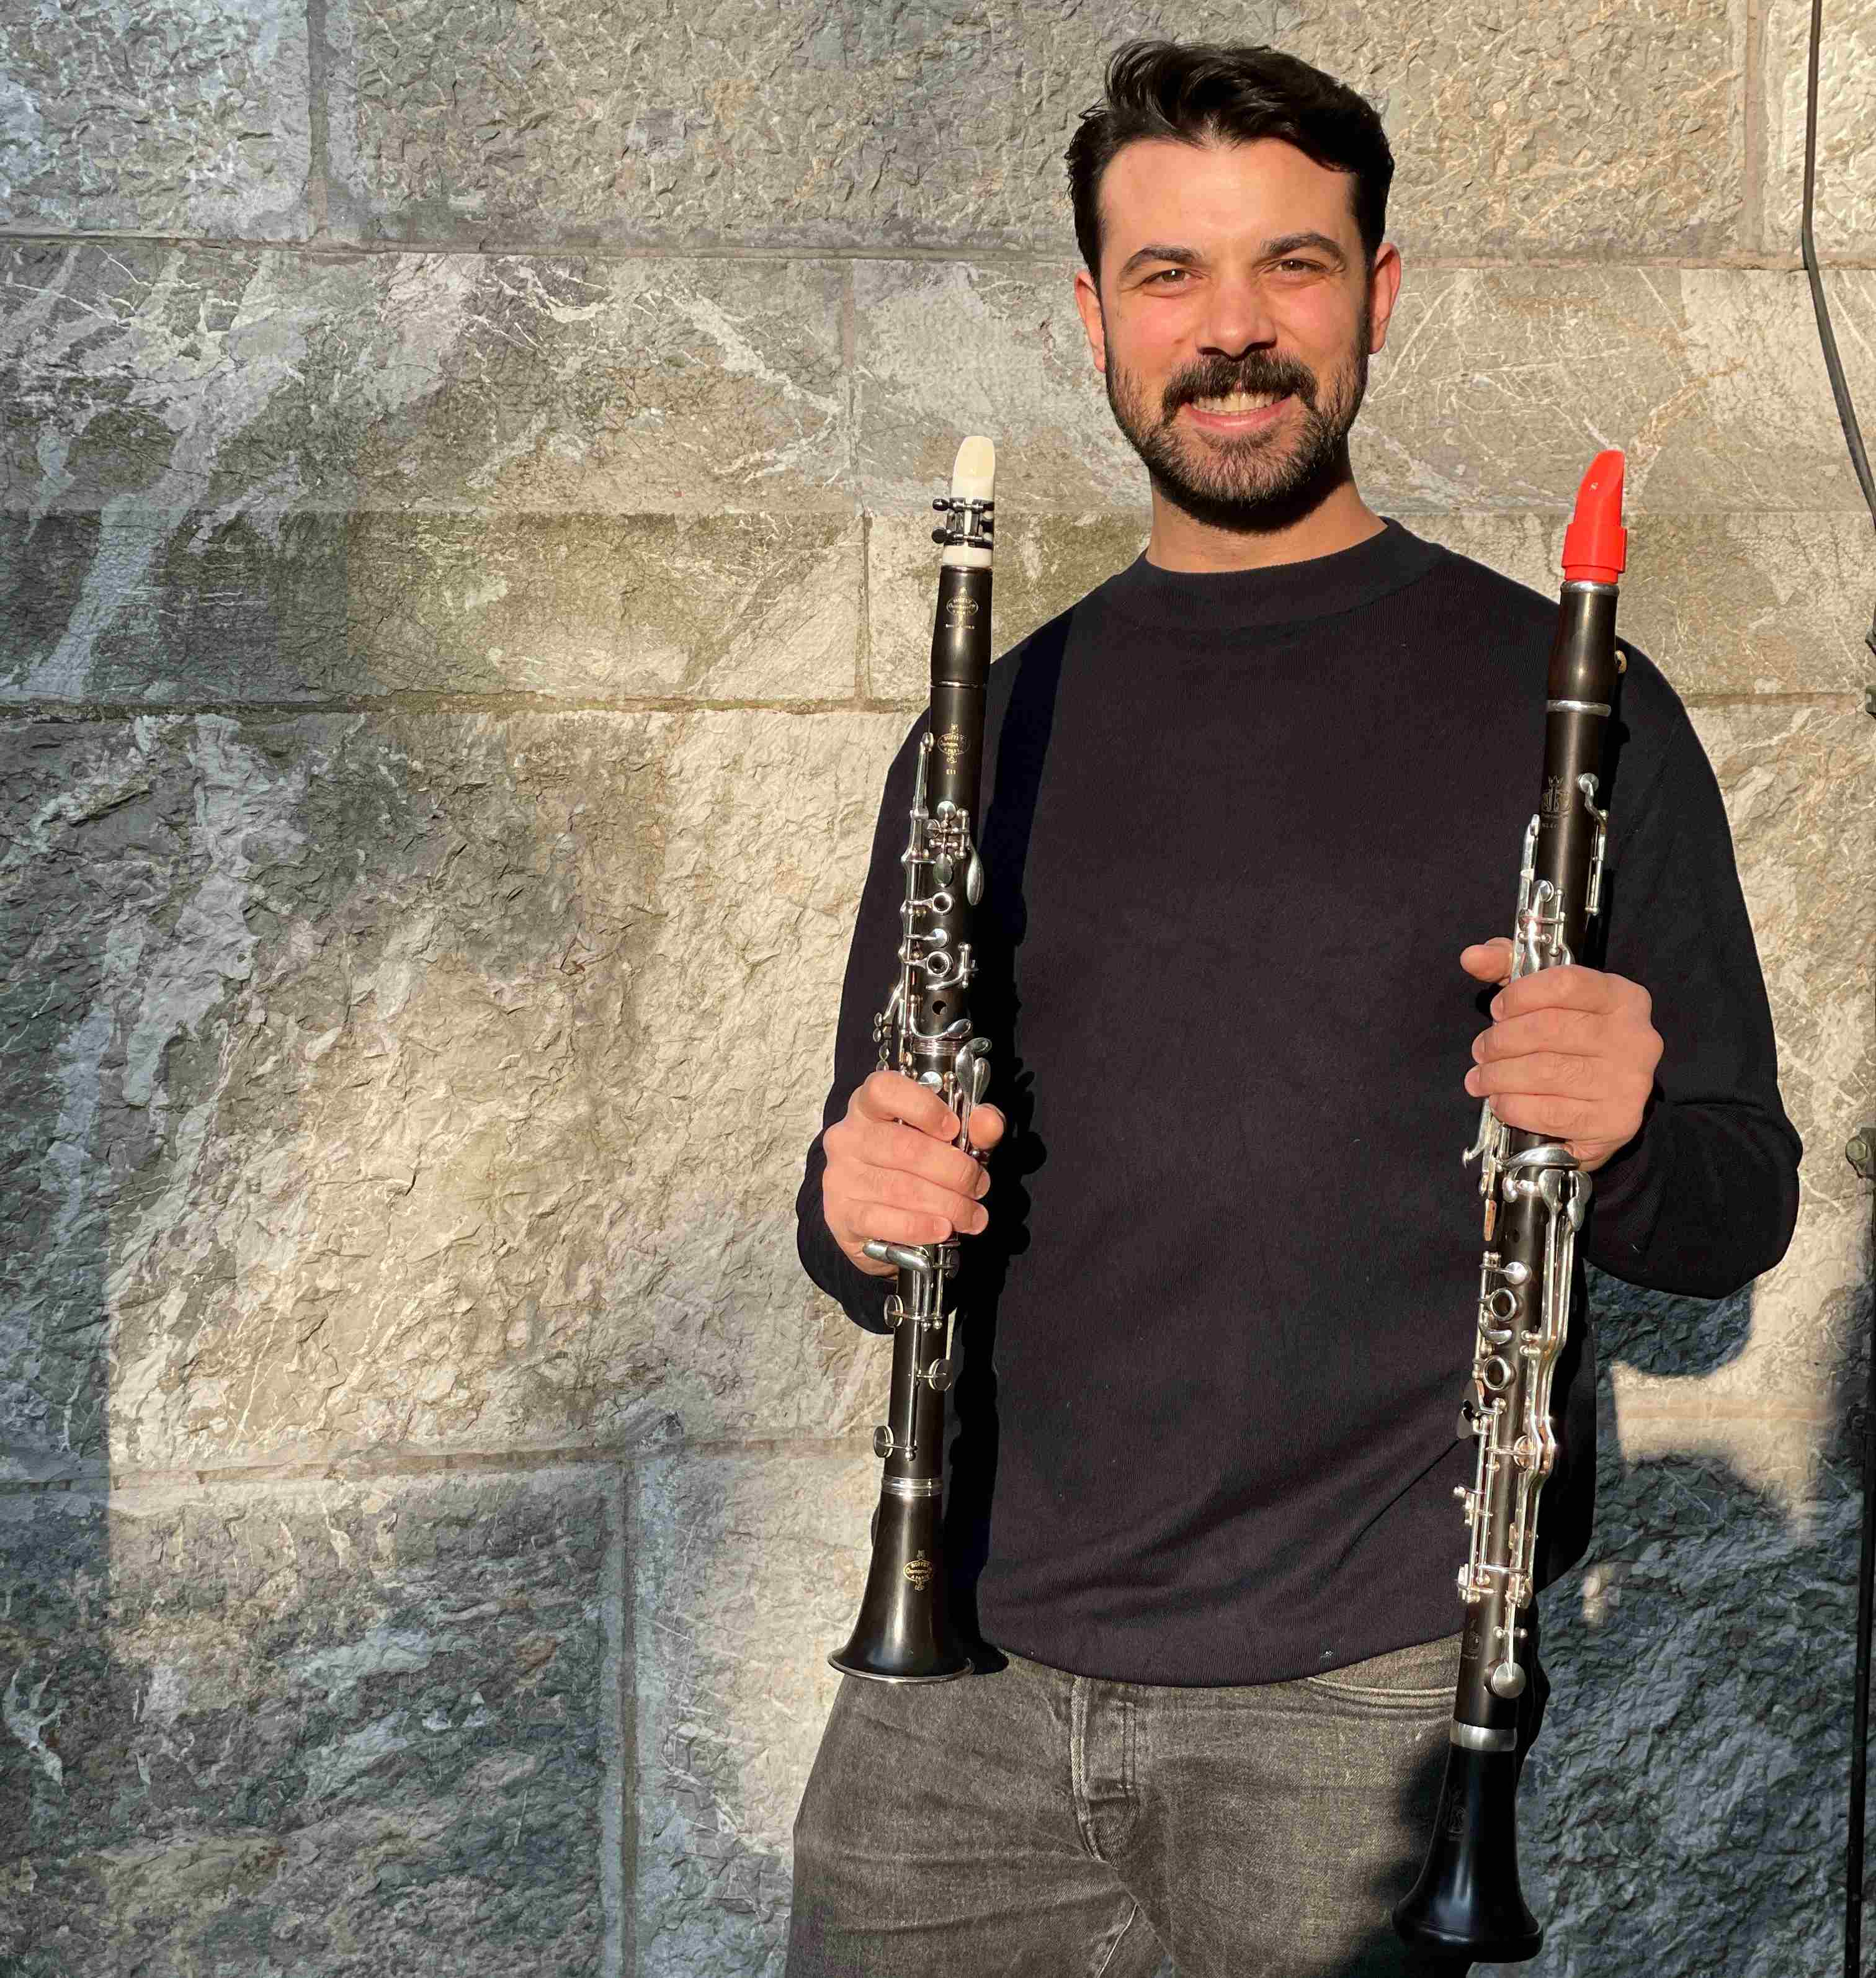 Gökhan Arslan and his Syos clarinet mouthpieces